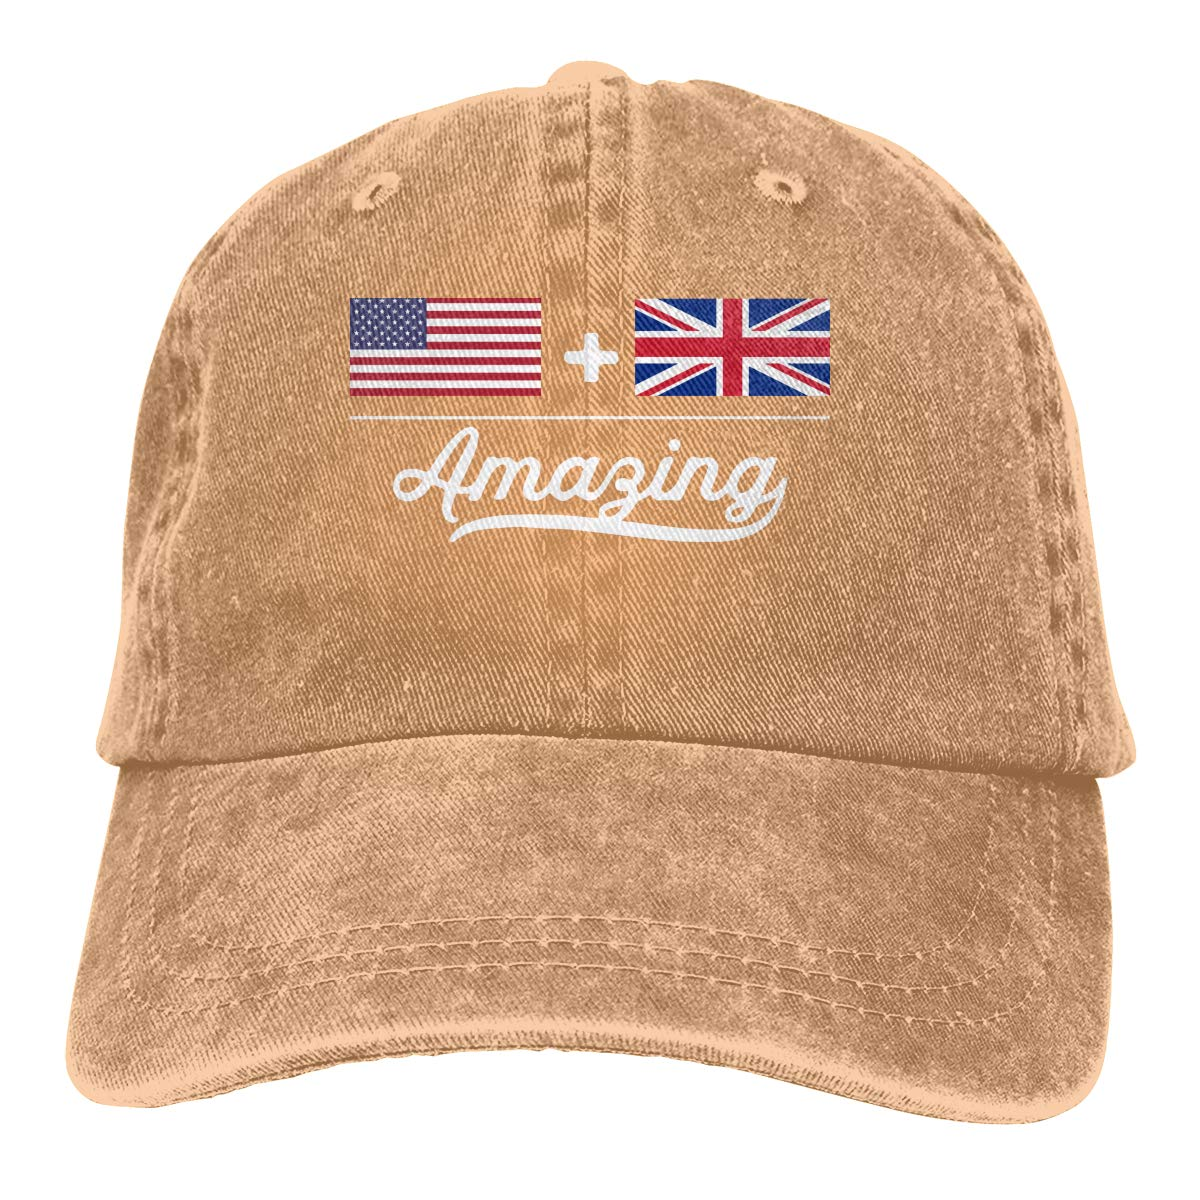 American British = Amazing Flag Unisex Adult Cowboy Hat Sun Hat Adjustable Truck Driver Hat